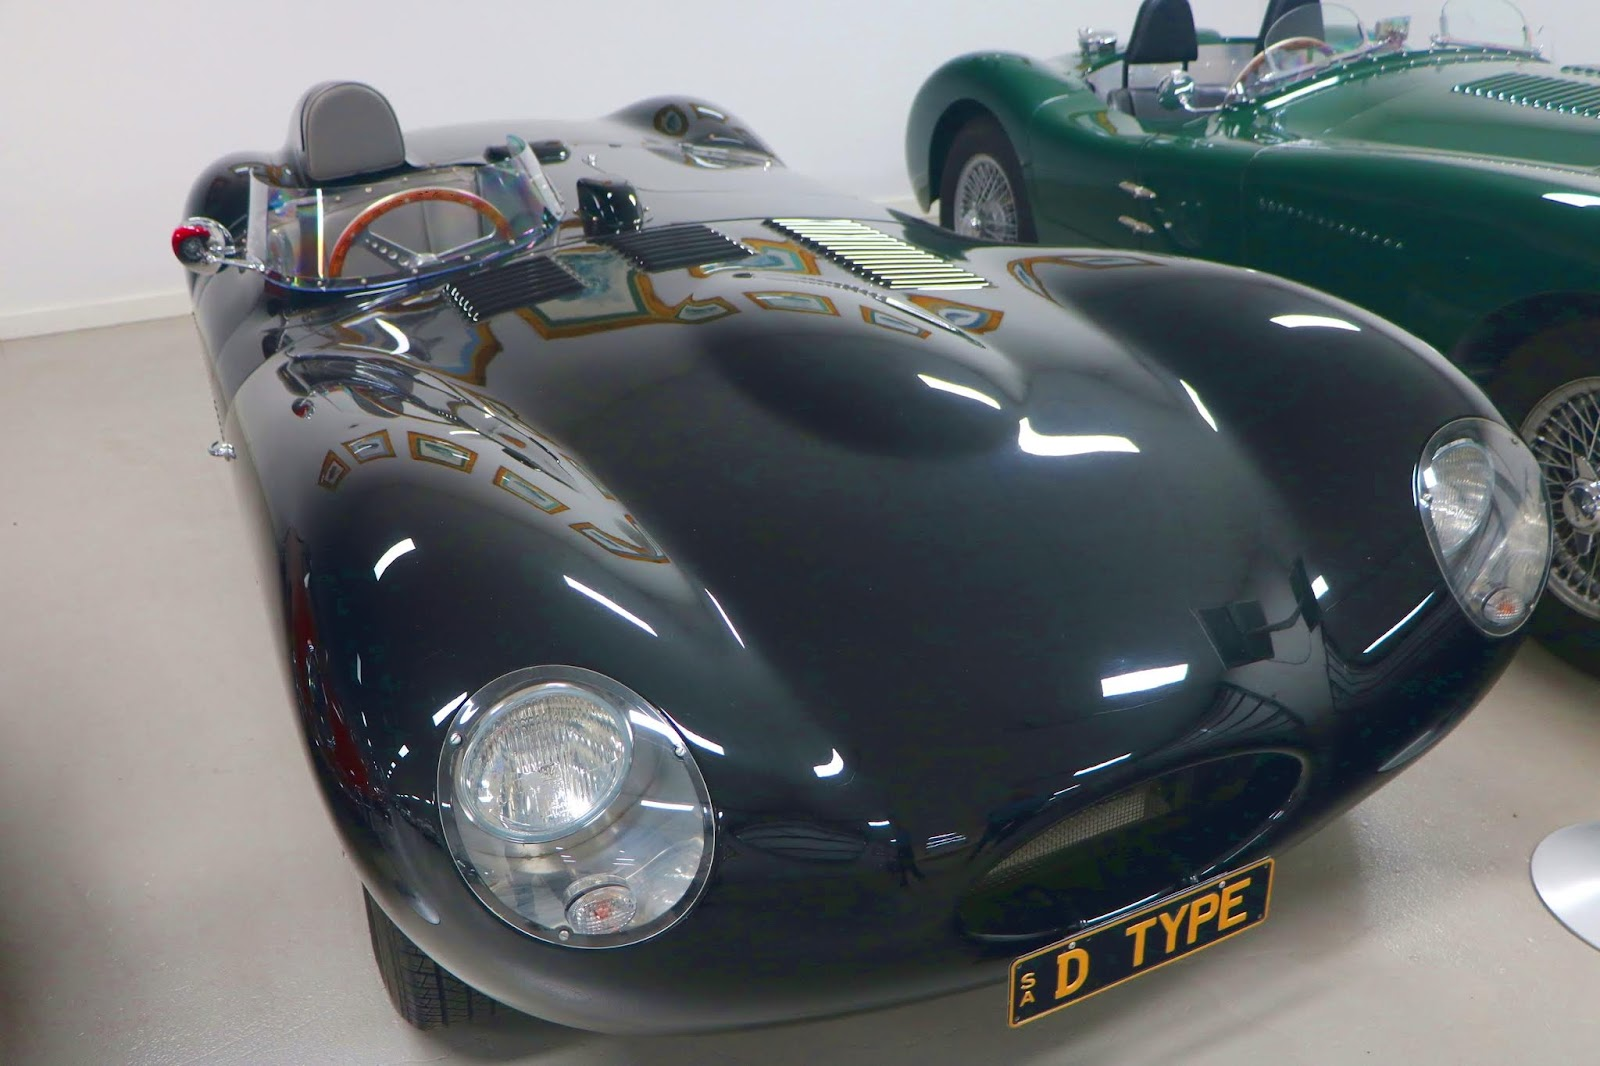 Carl_Lindner_Collection - Jaguar D-Type Replica 05.jpg